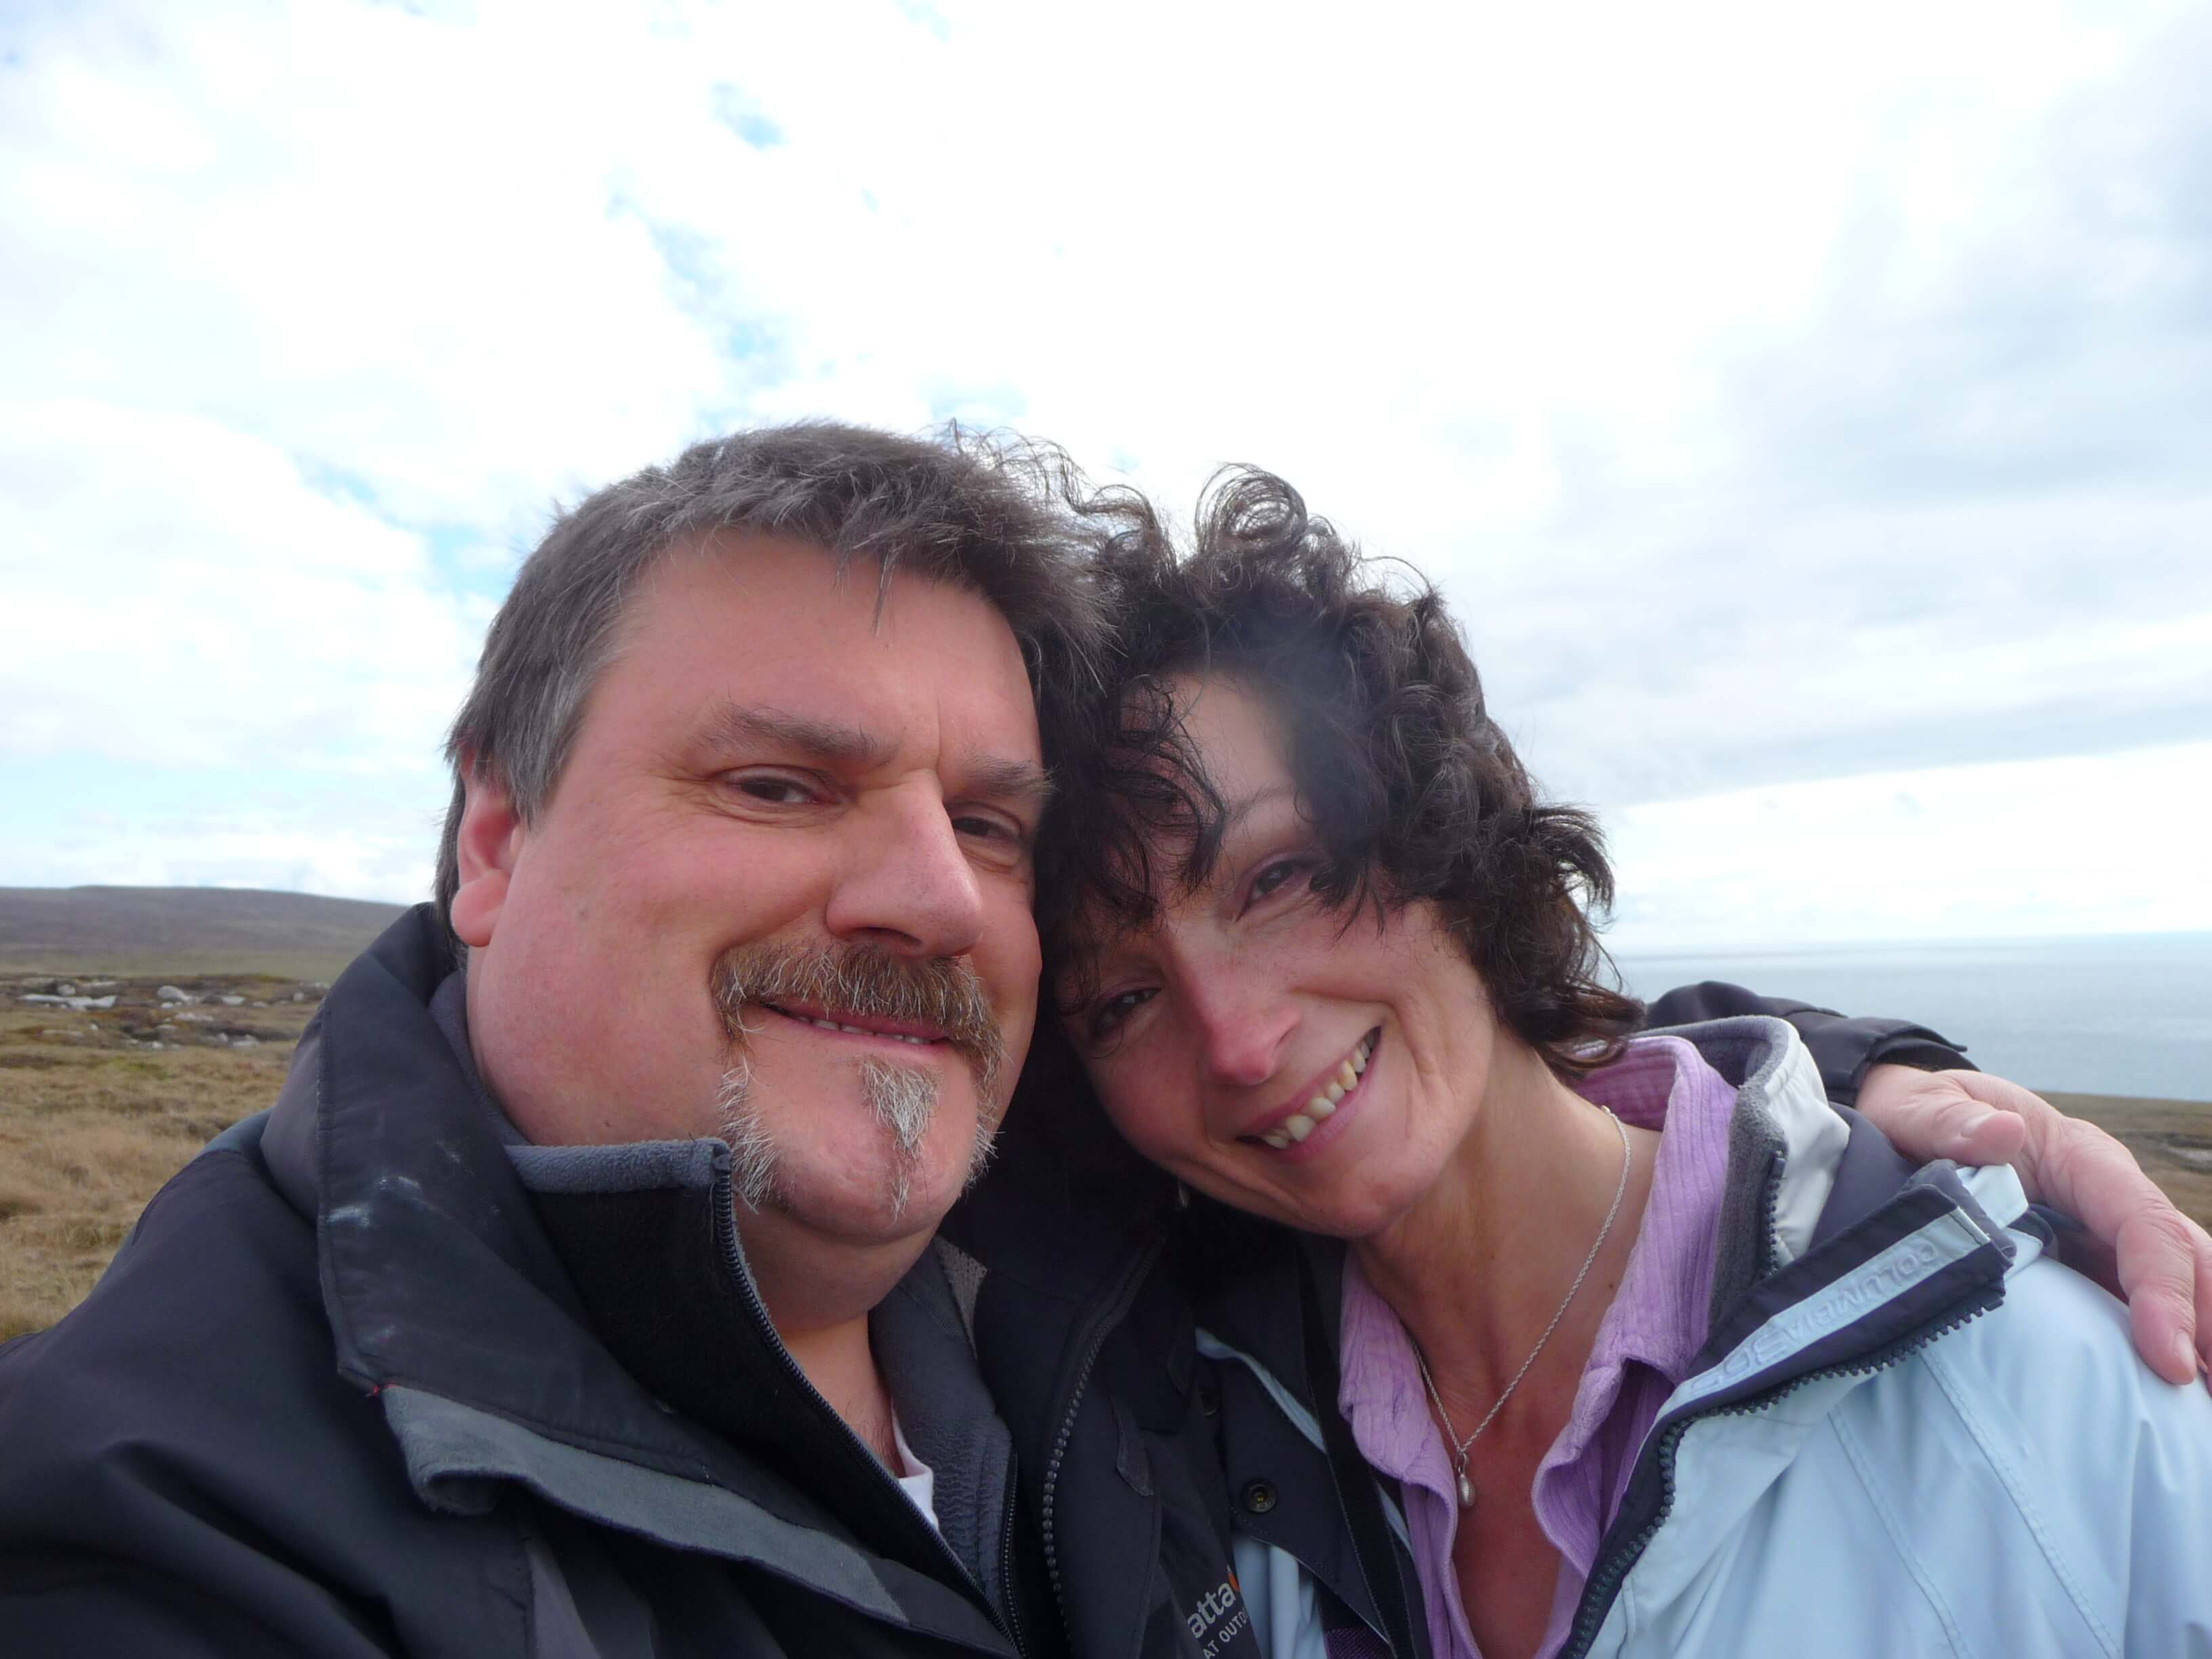 Tom Muir and Rhonda Muir of Orkneyology.com, Orkney Islands, Scotland, UK